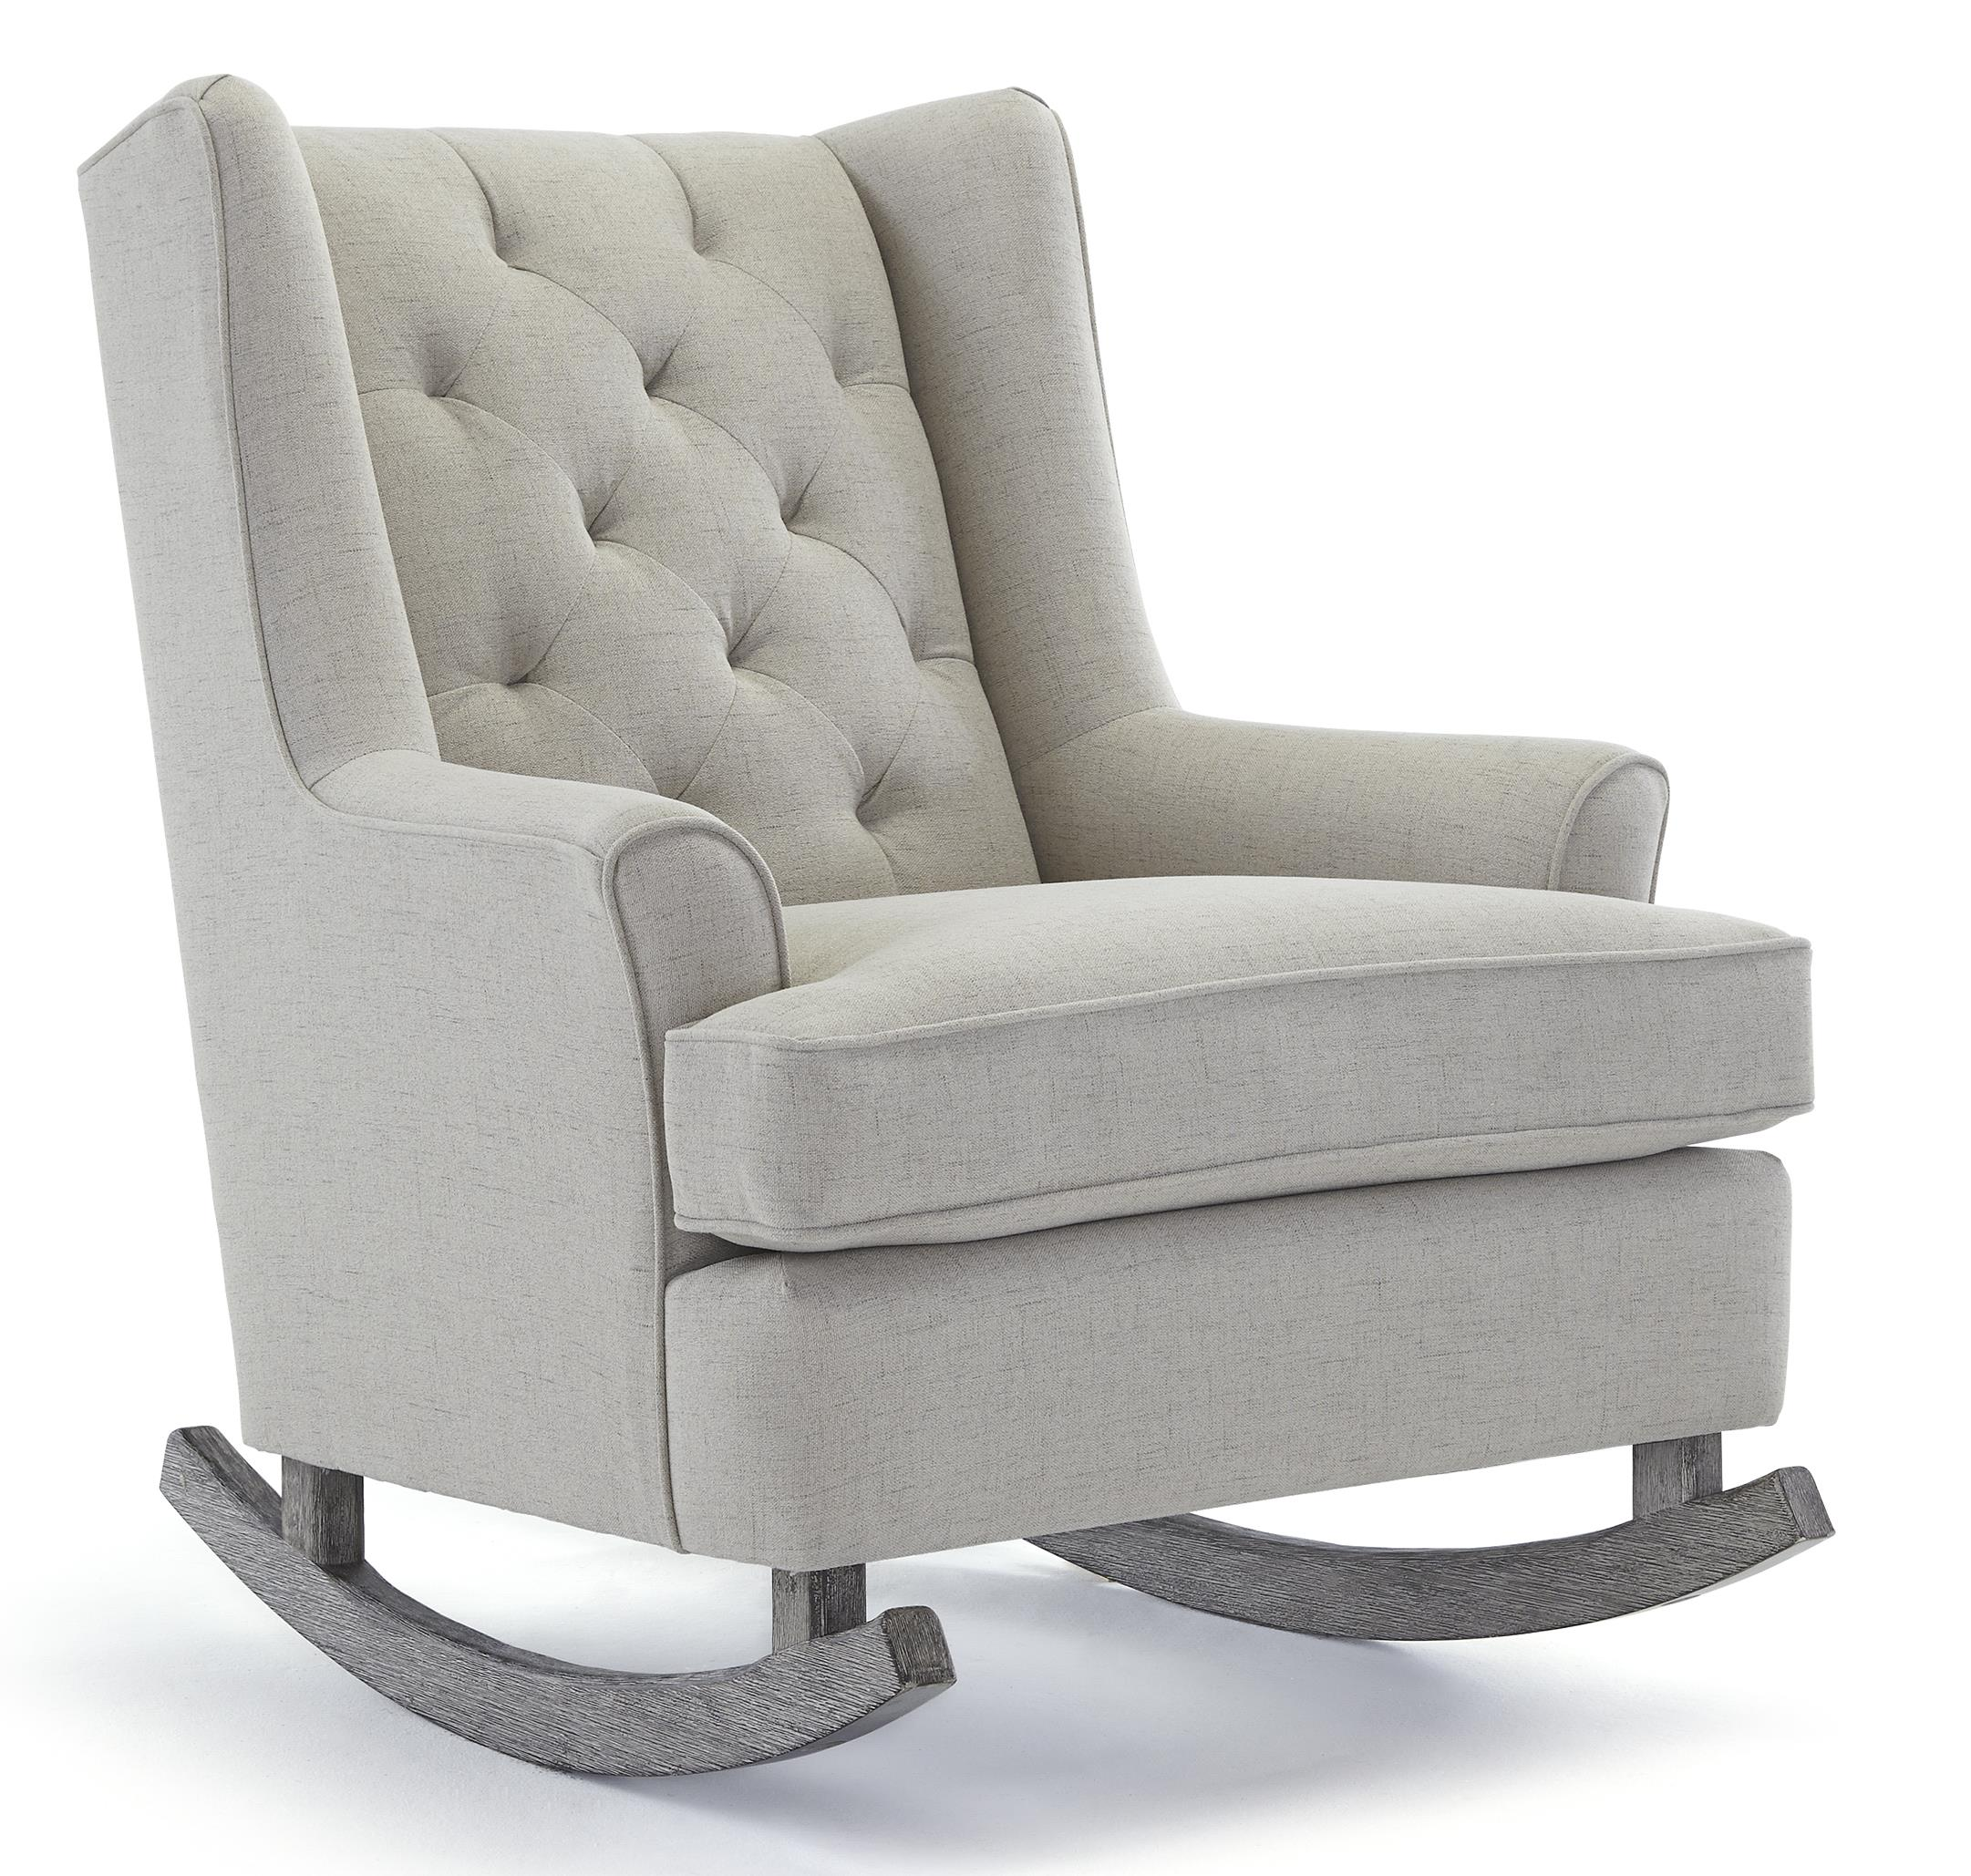 Paisley Chair Runner Rockers Paisley Button Tufted Rocking Chair With Wood Runners By Best Home Furnishings At Boulevard Home Furnishings